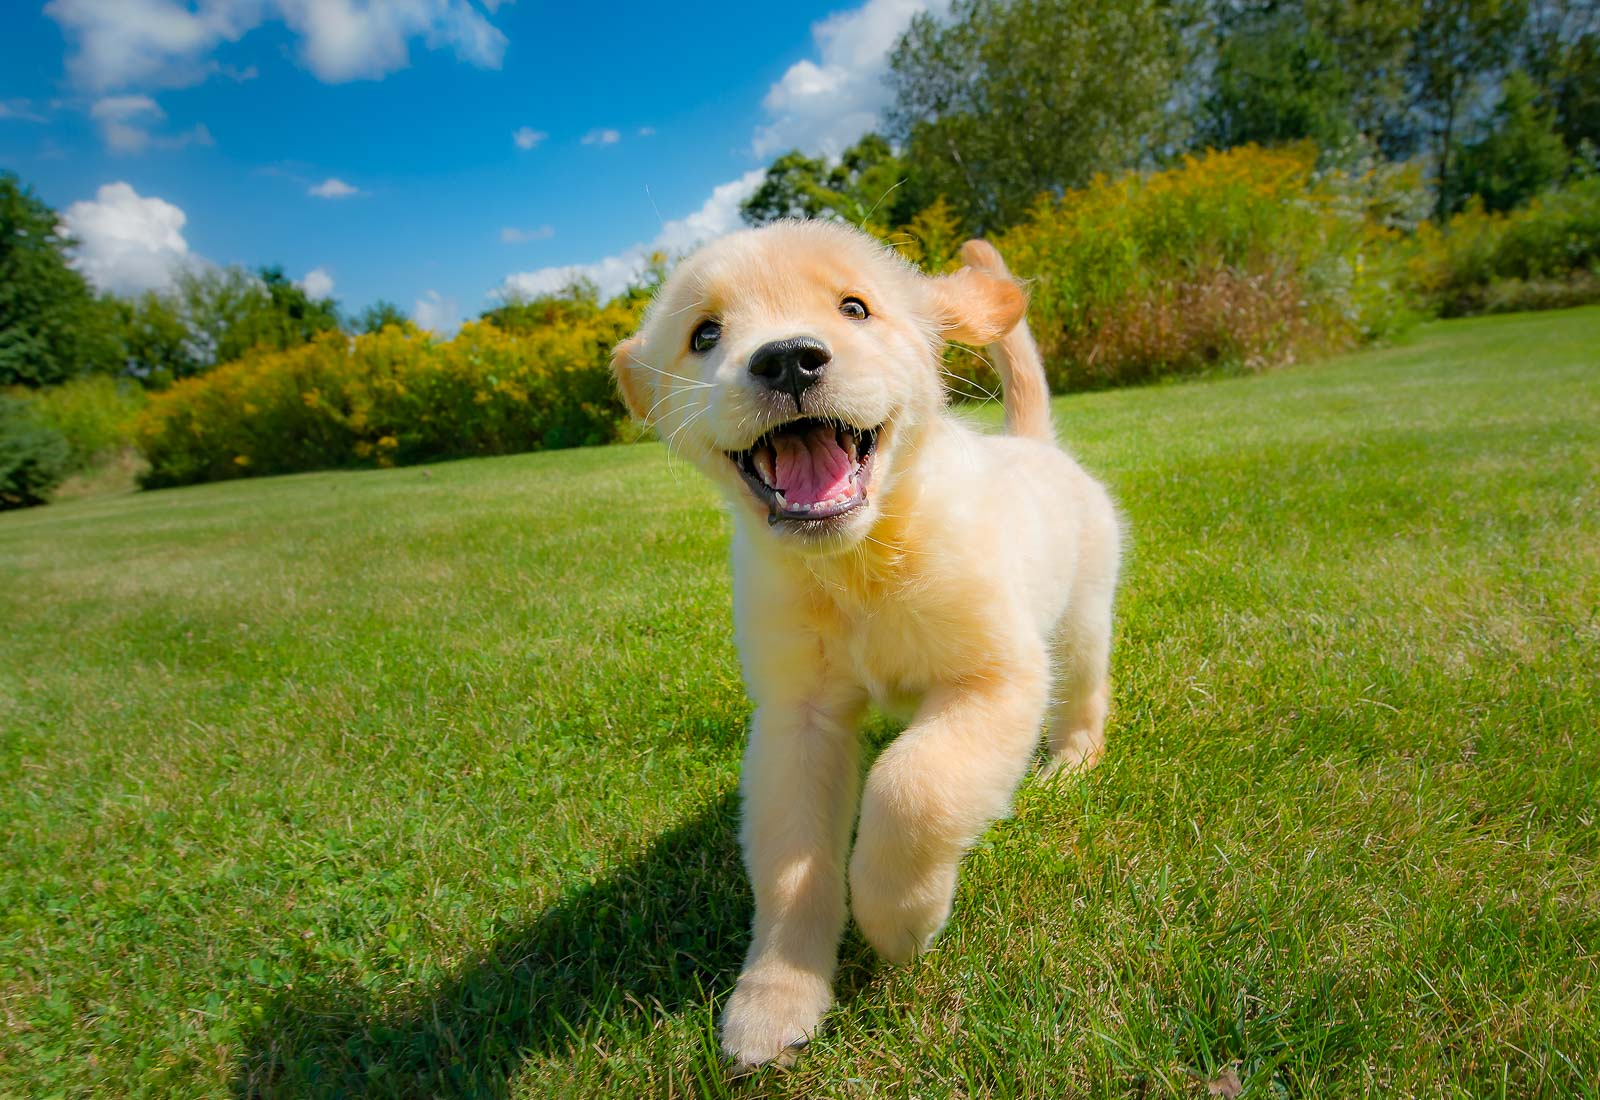 Golden Retriever puppy smiling and running